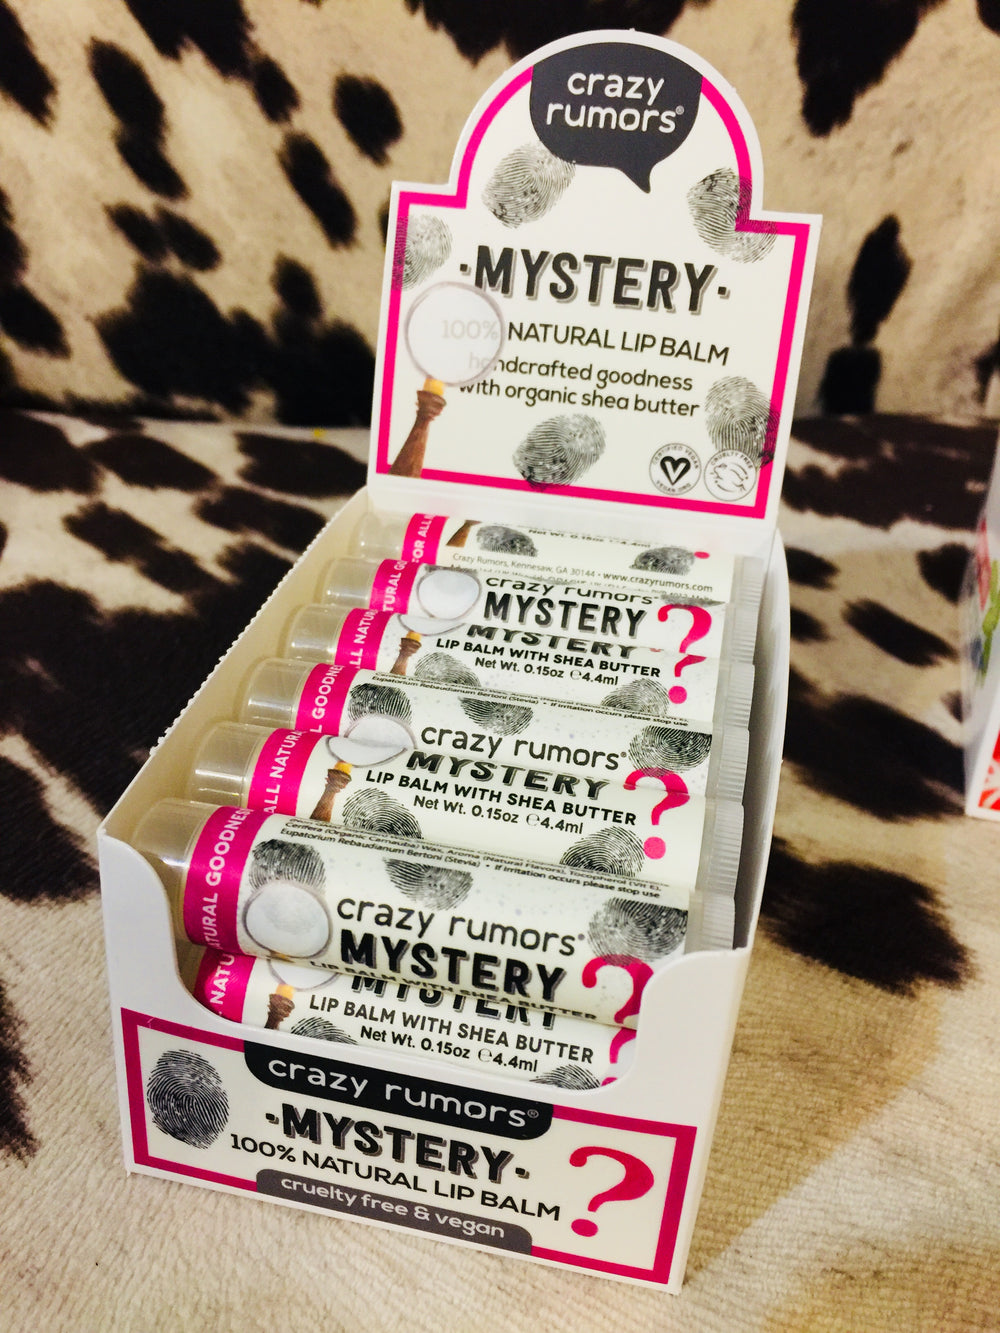 Crazy Rumors Mystery Lip Balm